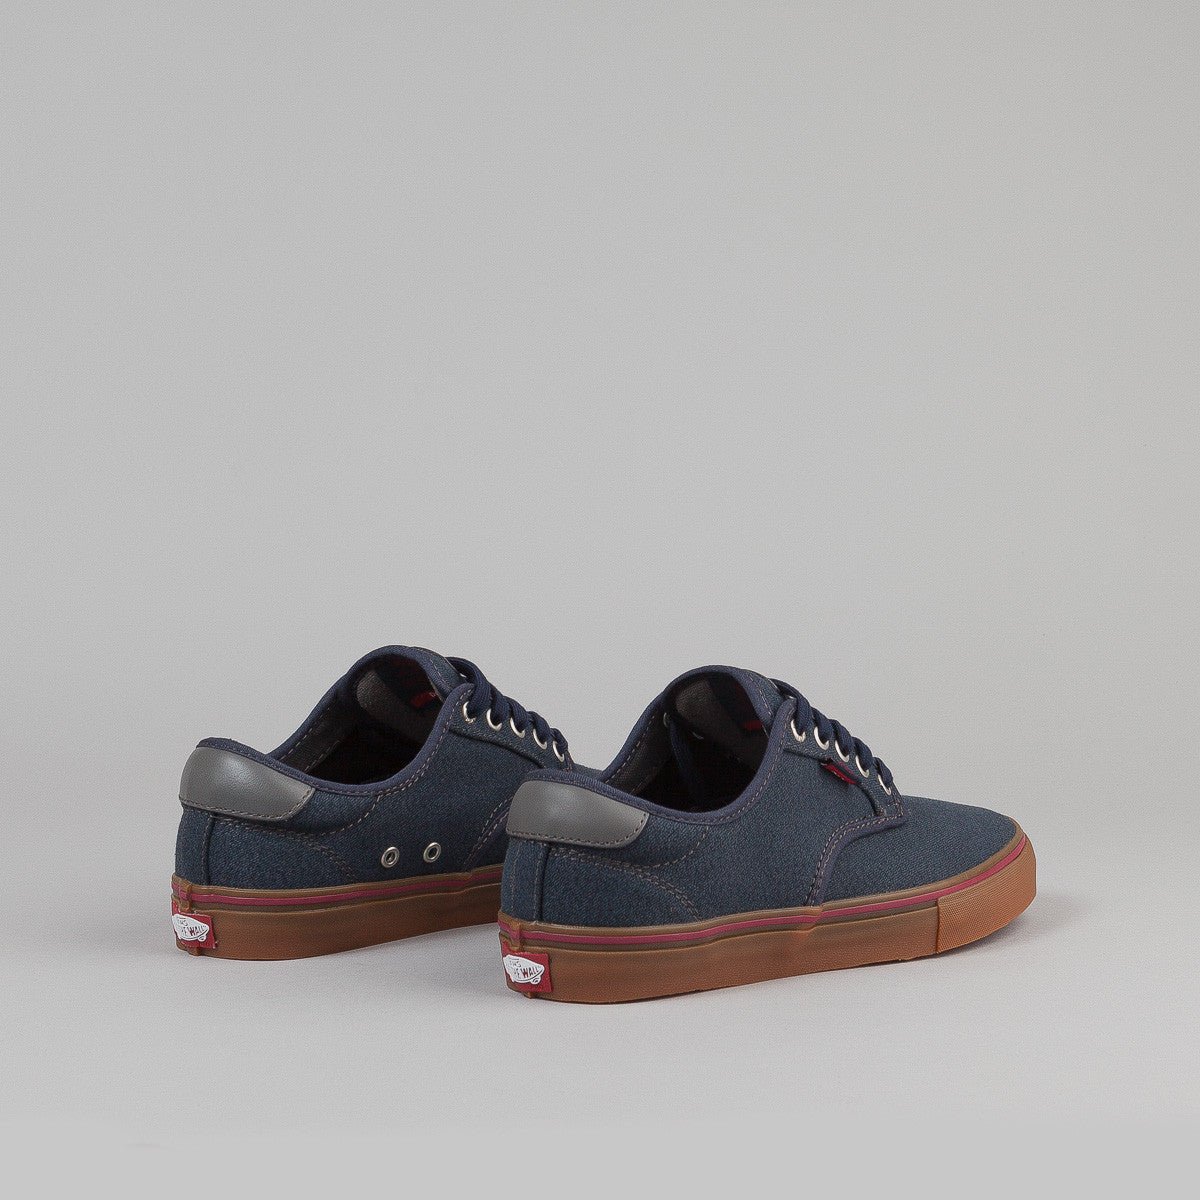 Vans Chima Ferguson Pro Shoes - (Covert Twill) Navy / Gum